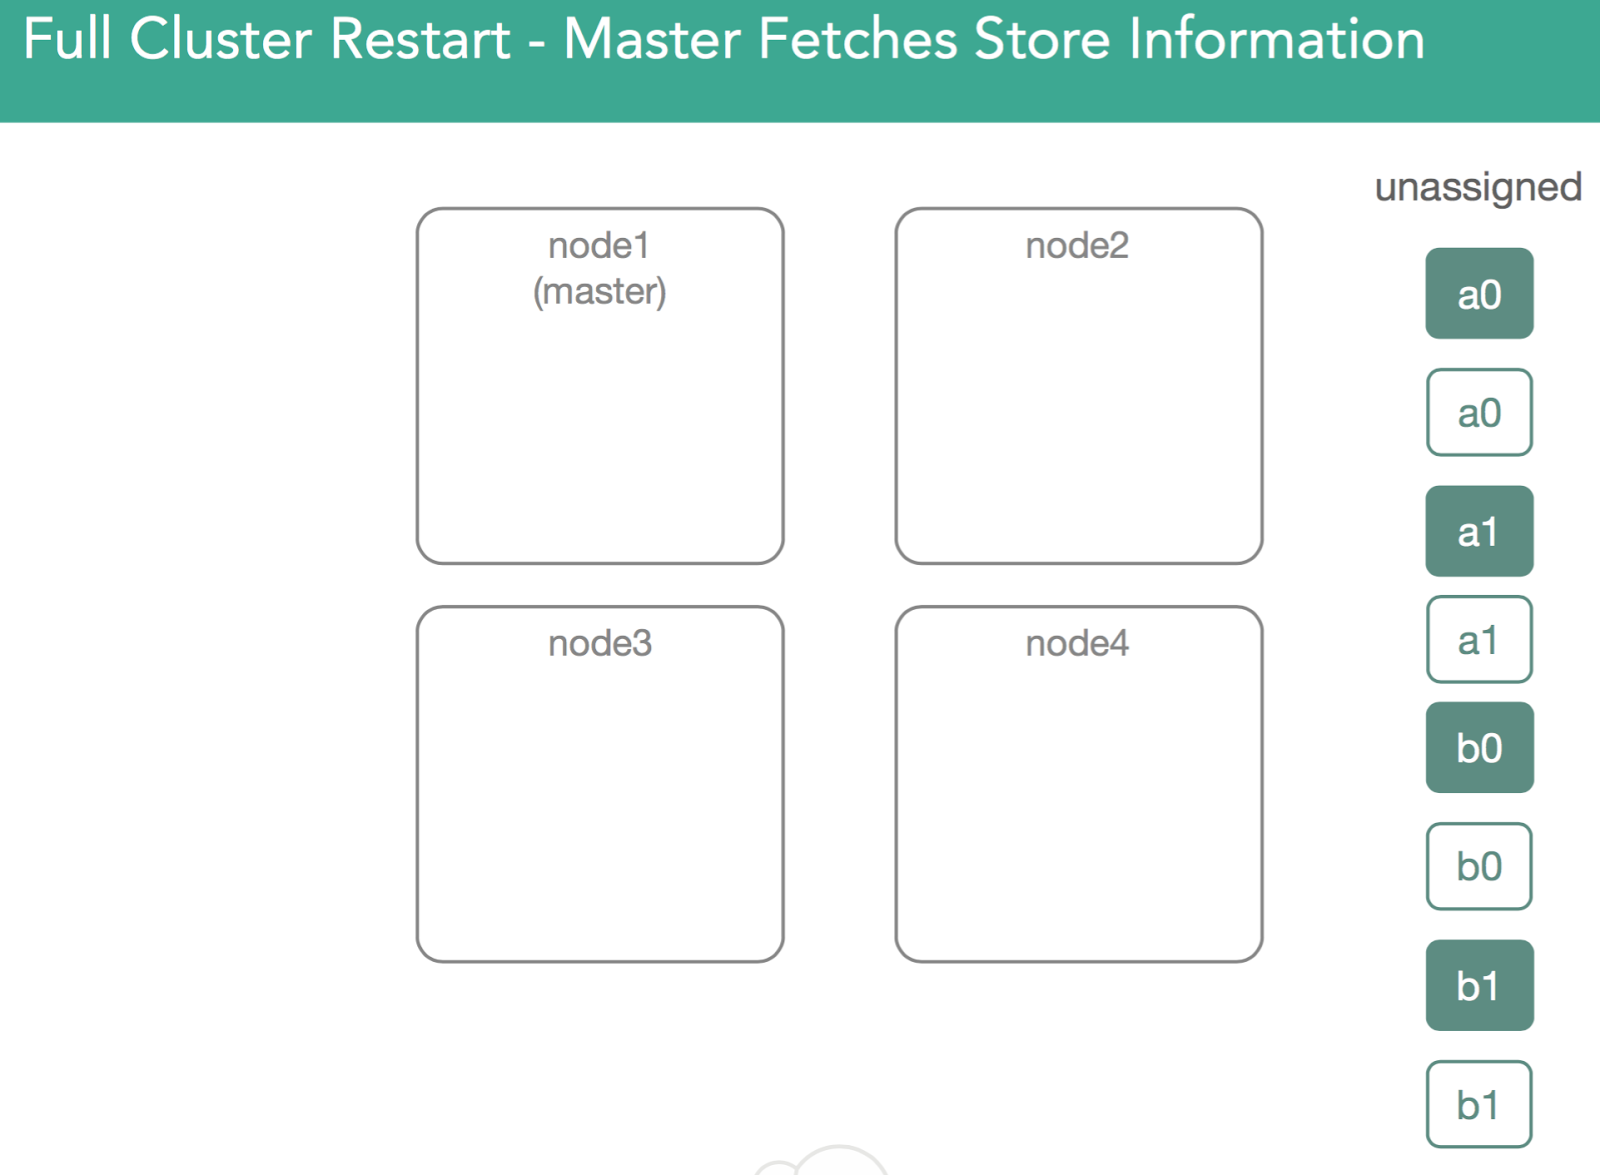 Full Cluster Restart - Master Fetches Store Information